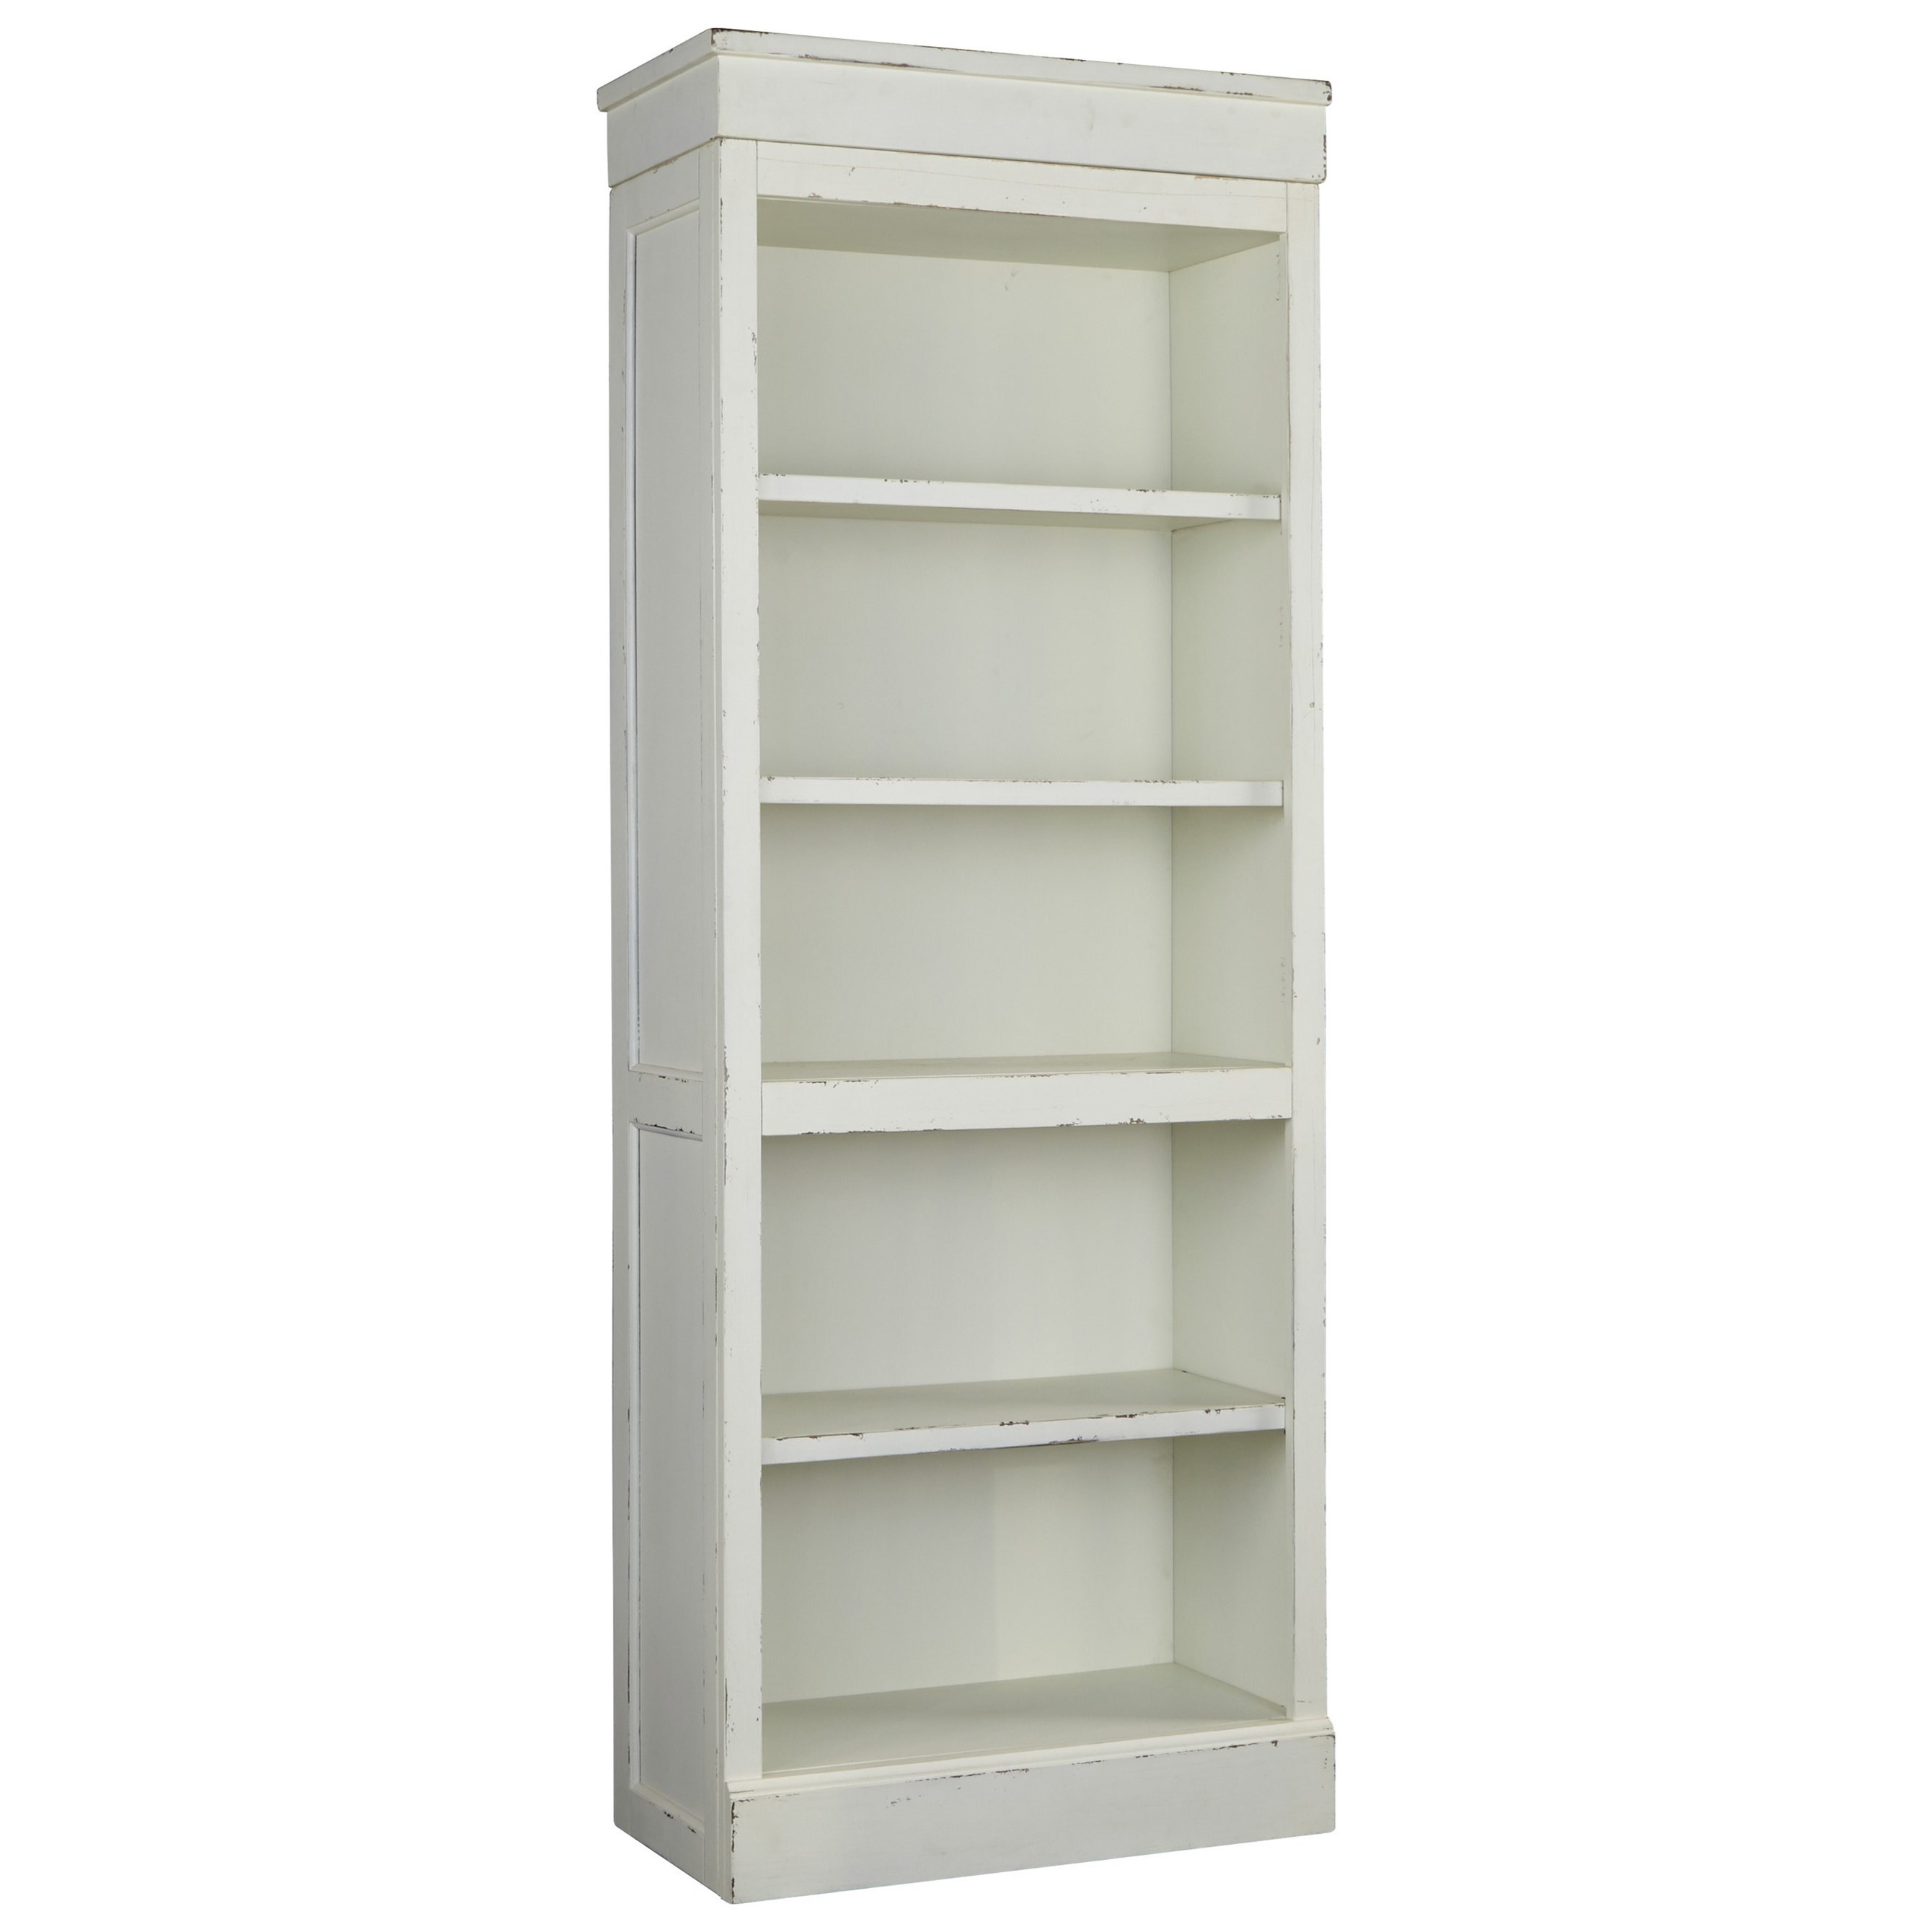 Vintage Bookcase Blinton Relaxed Vintage Pier Bookcase By Signature Design By Ashley At Household Furniture